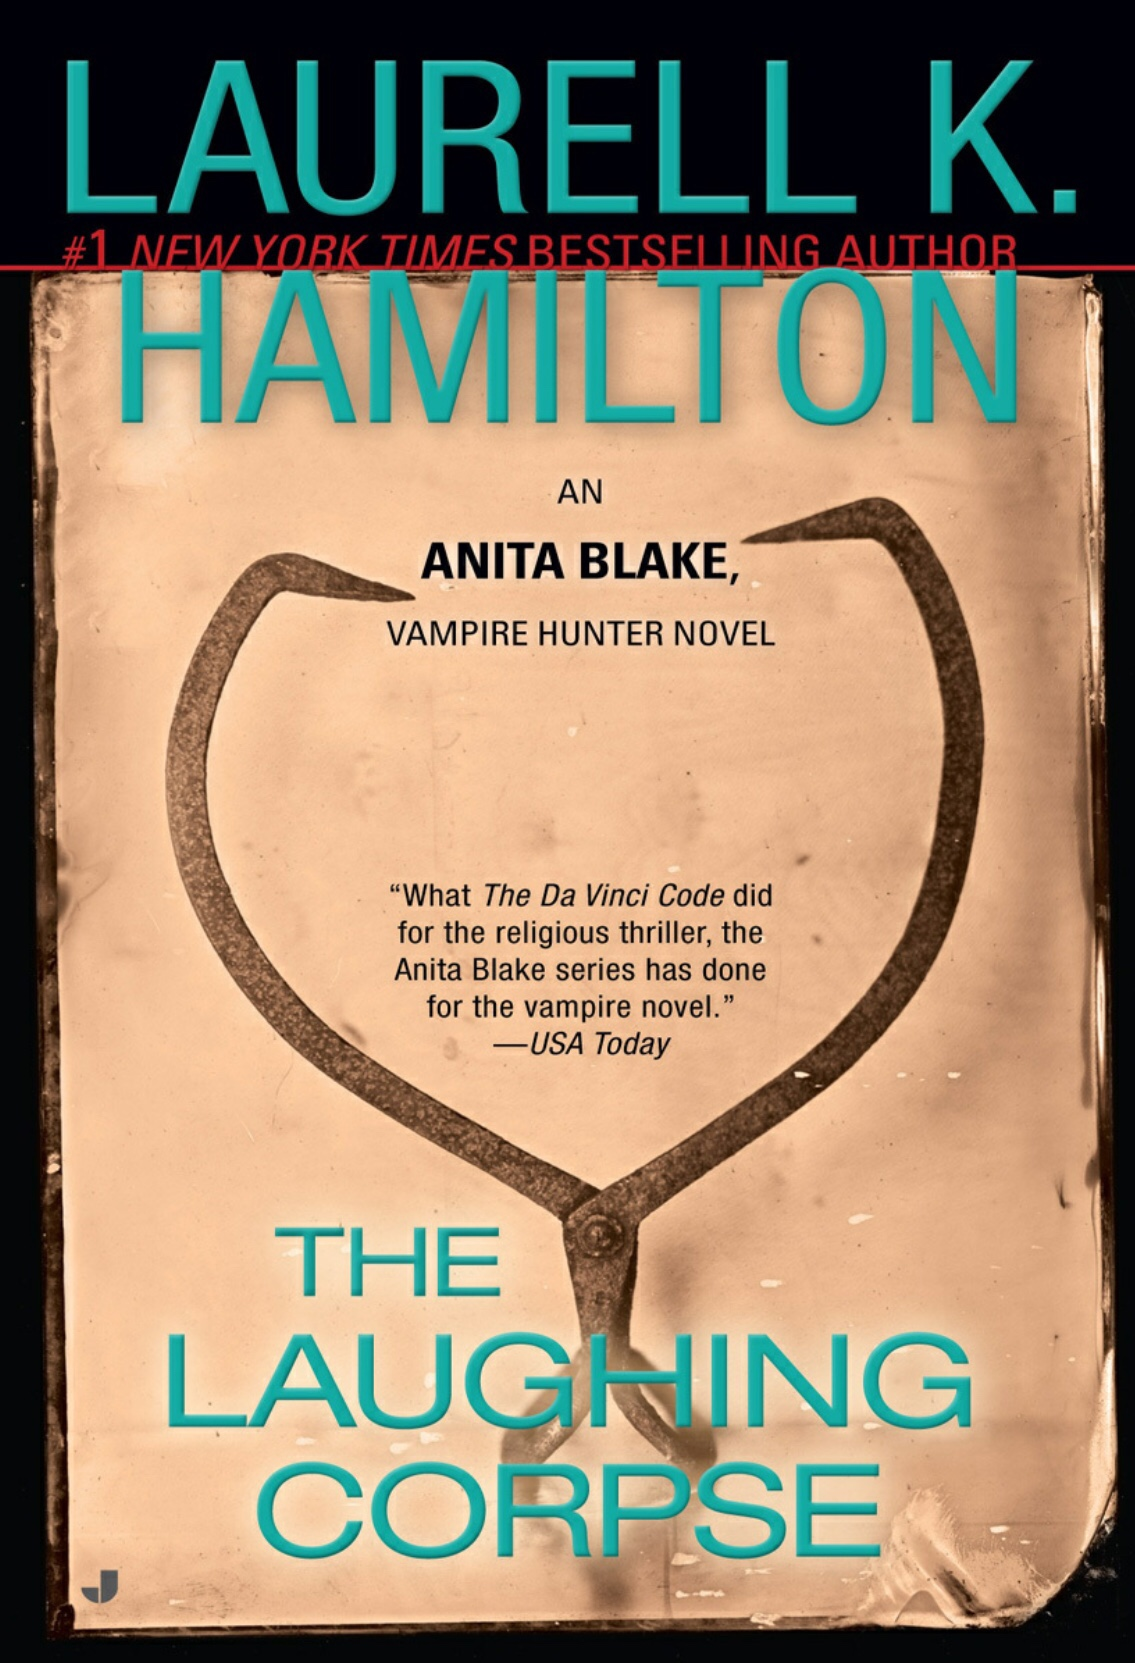 Reading The Laughing Corpse by Laurell K. Hamilton